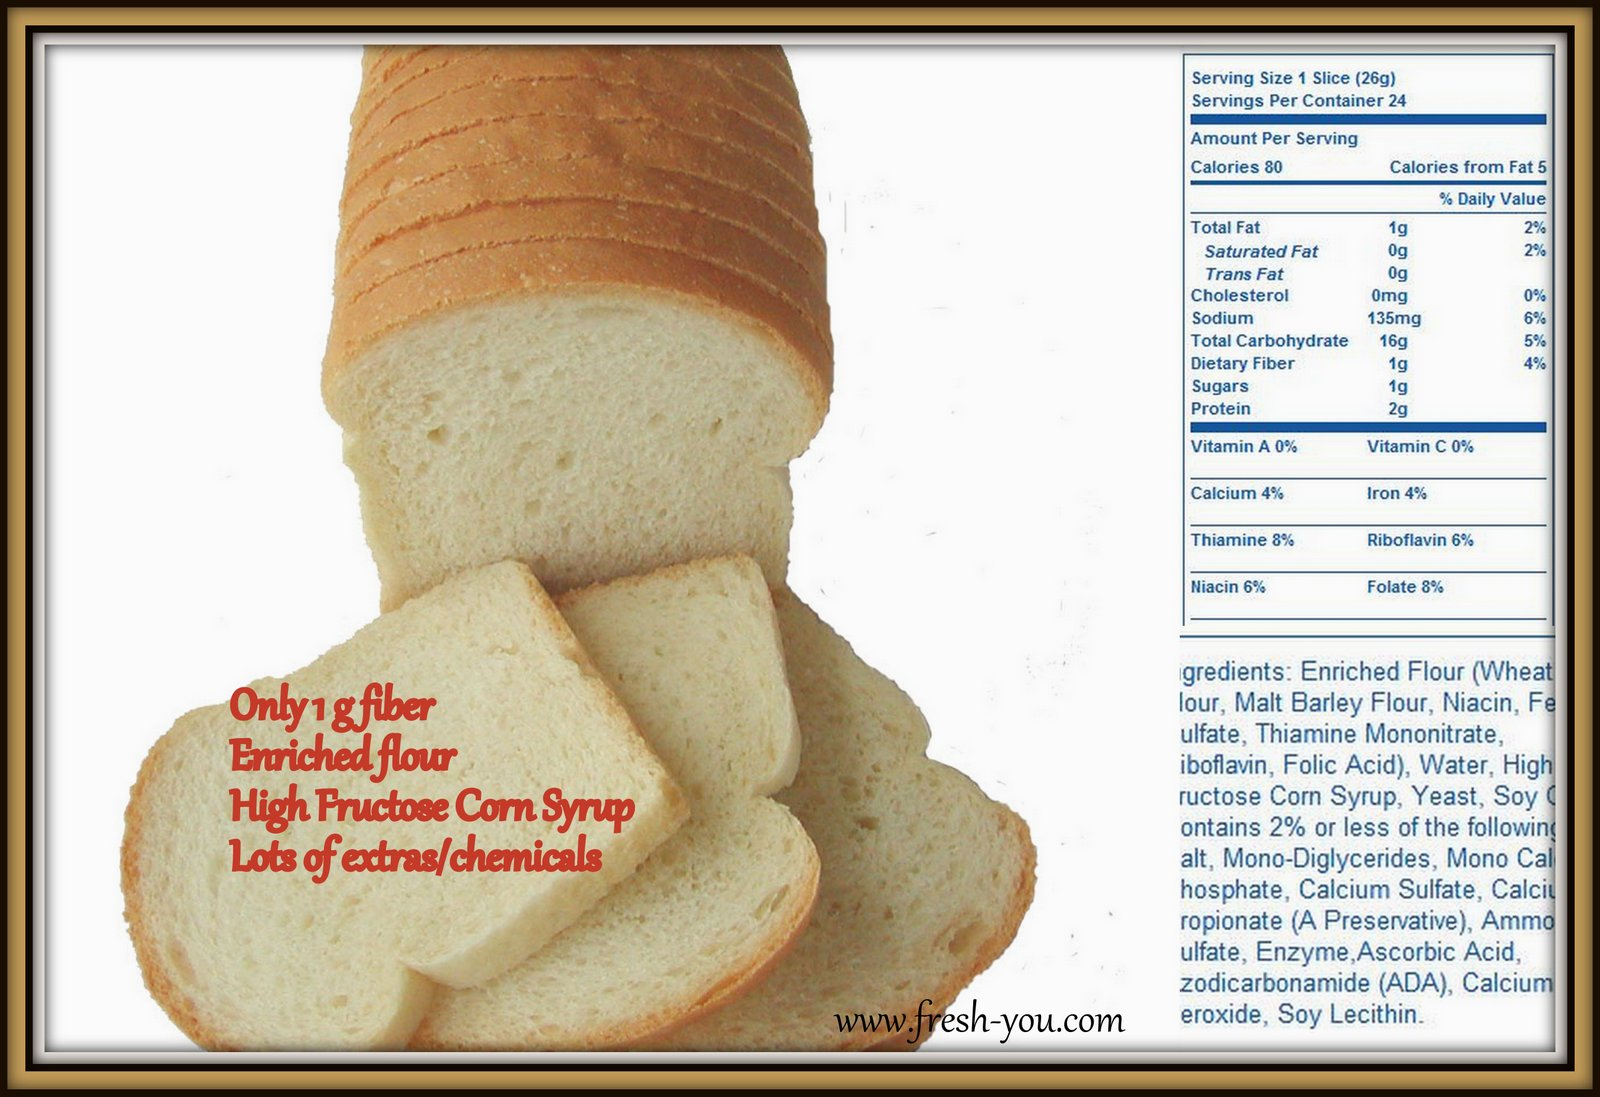 fresh-you nutrition, fitness, and wellness: make sense of bread labels!